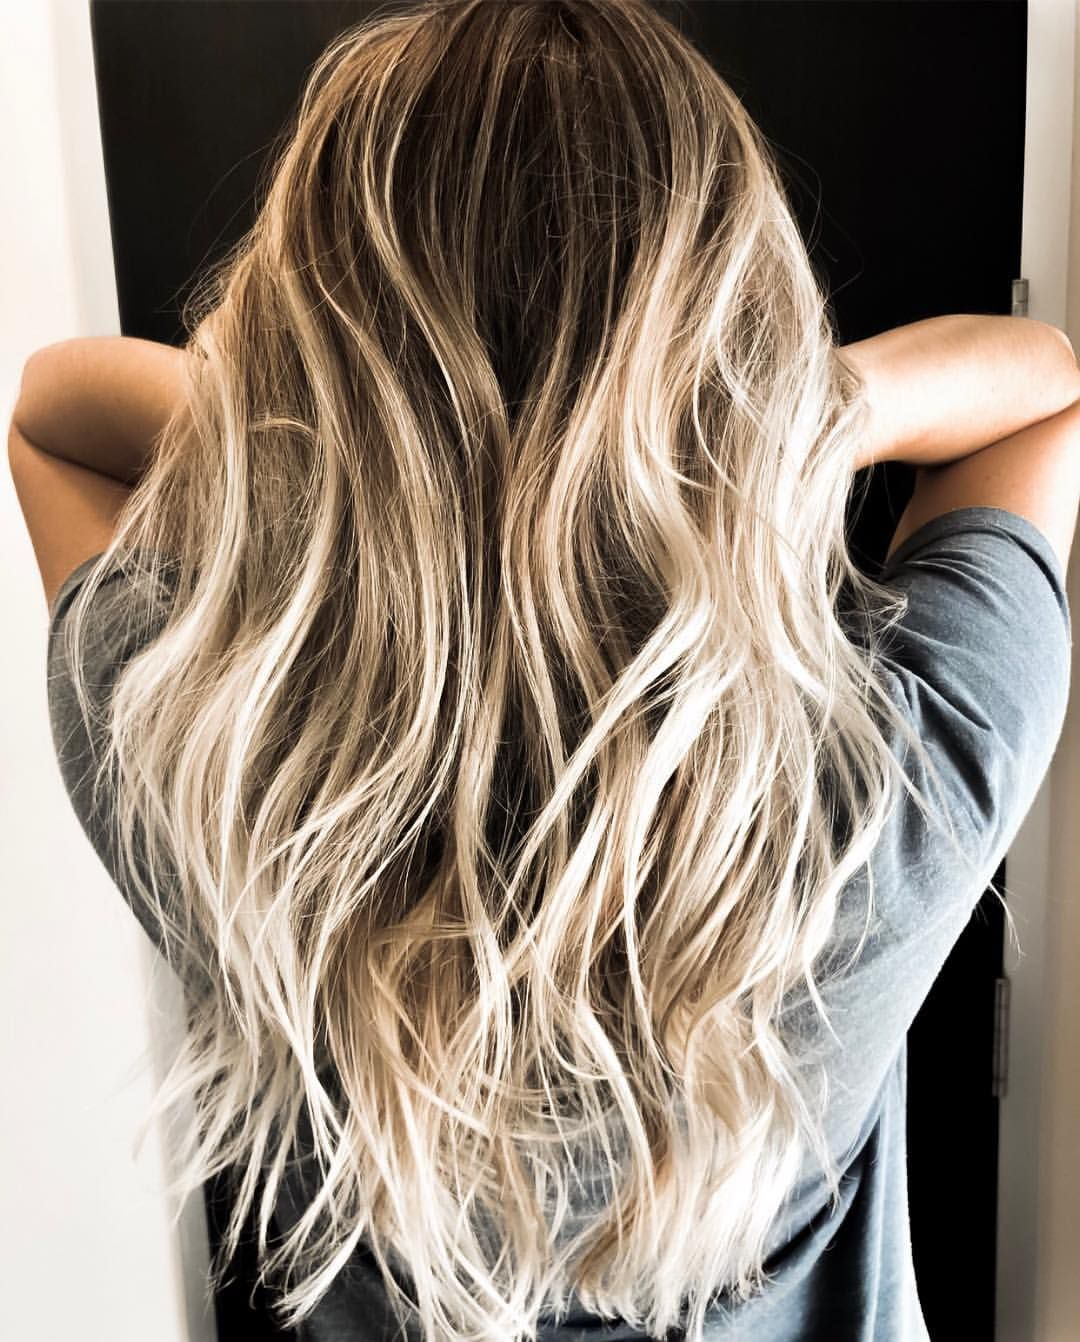 A Fresh Set Of Highlights Can Make All The Difference In A Girl S